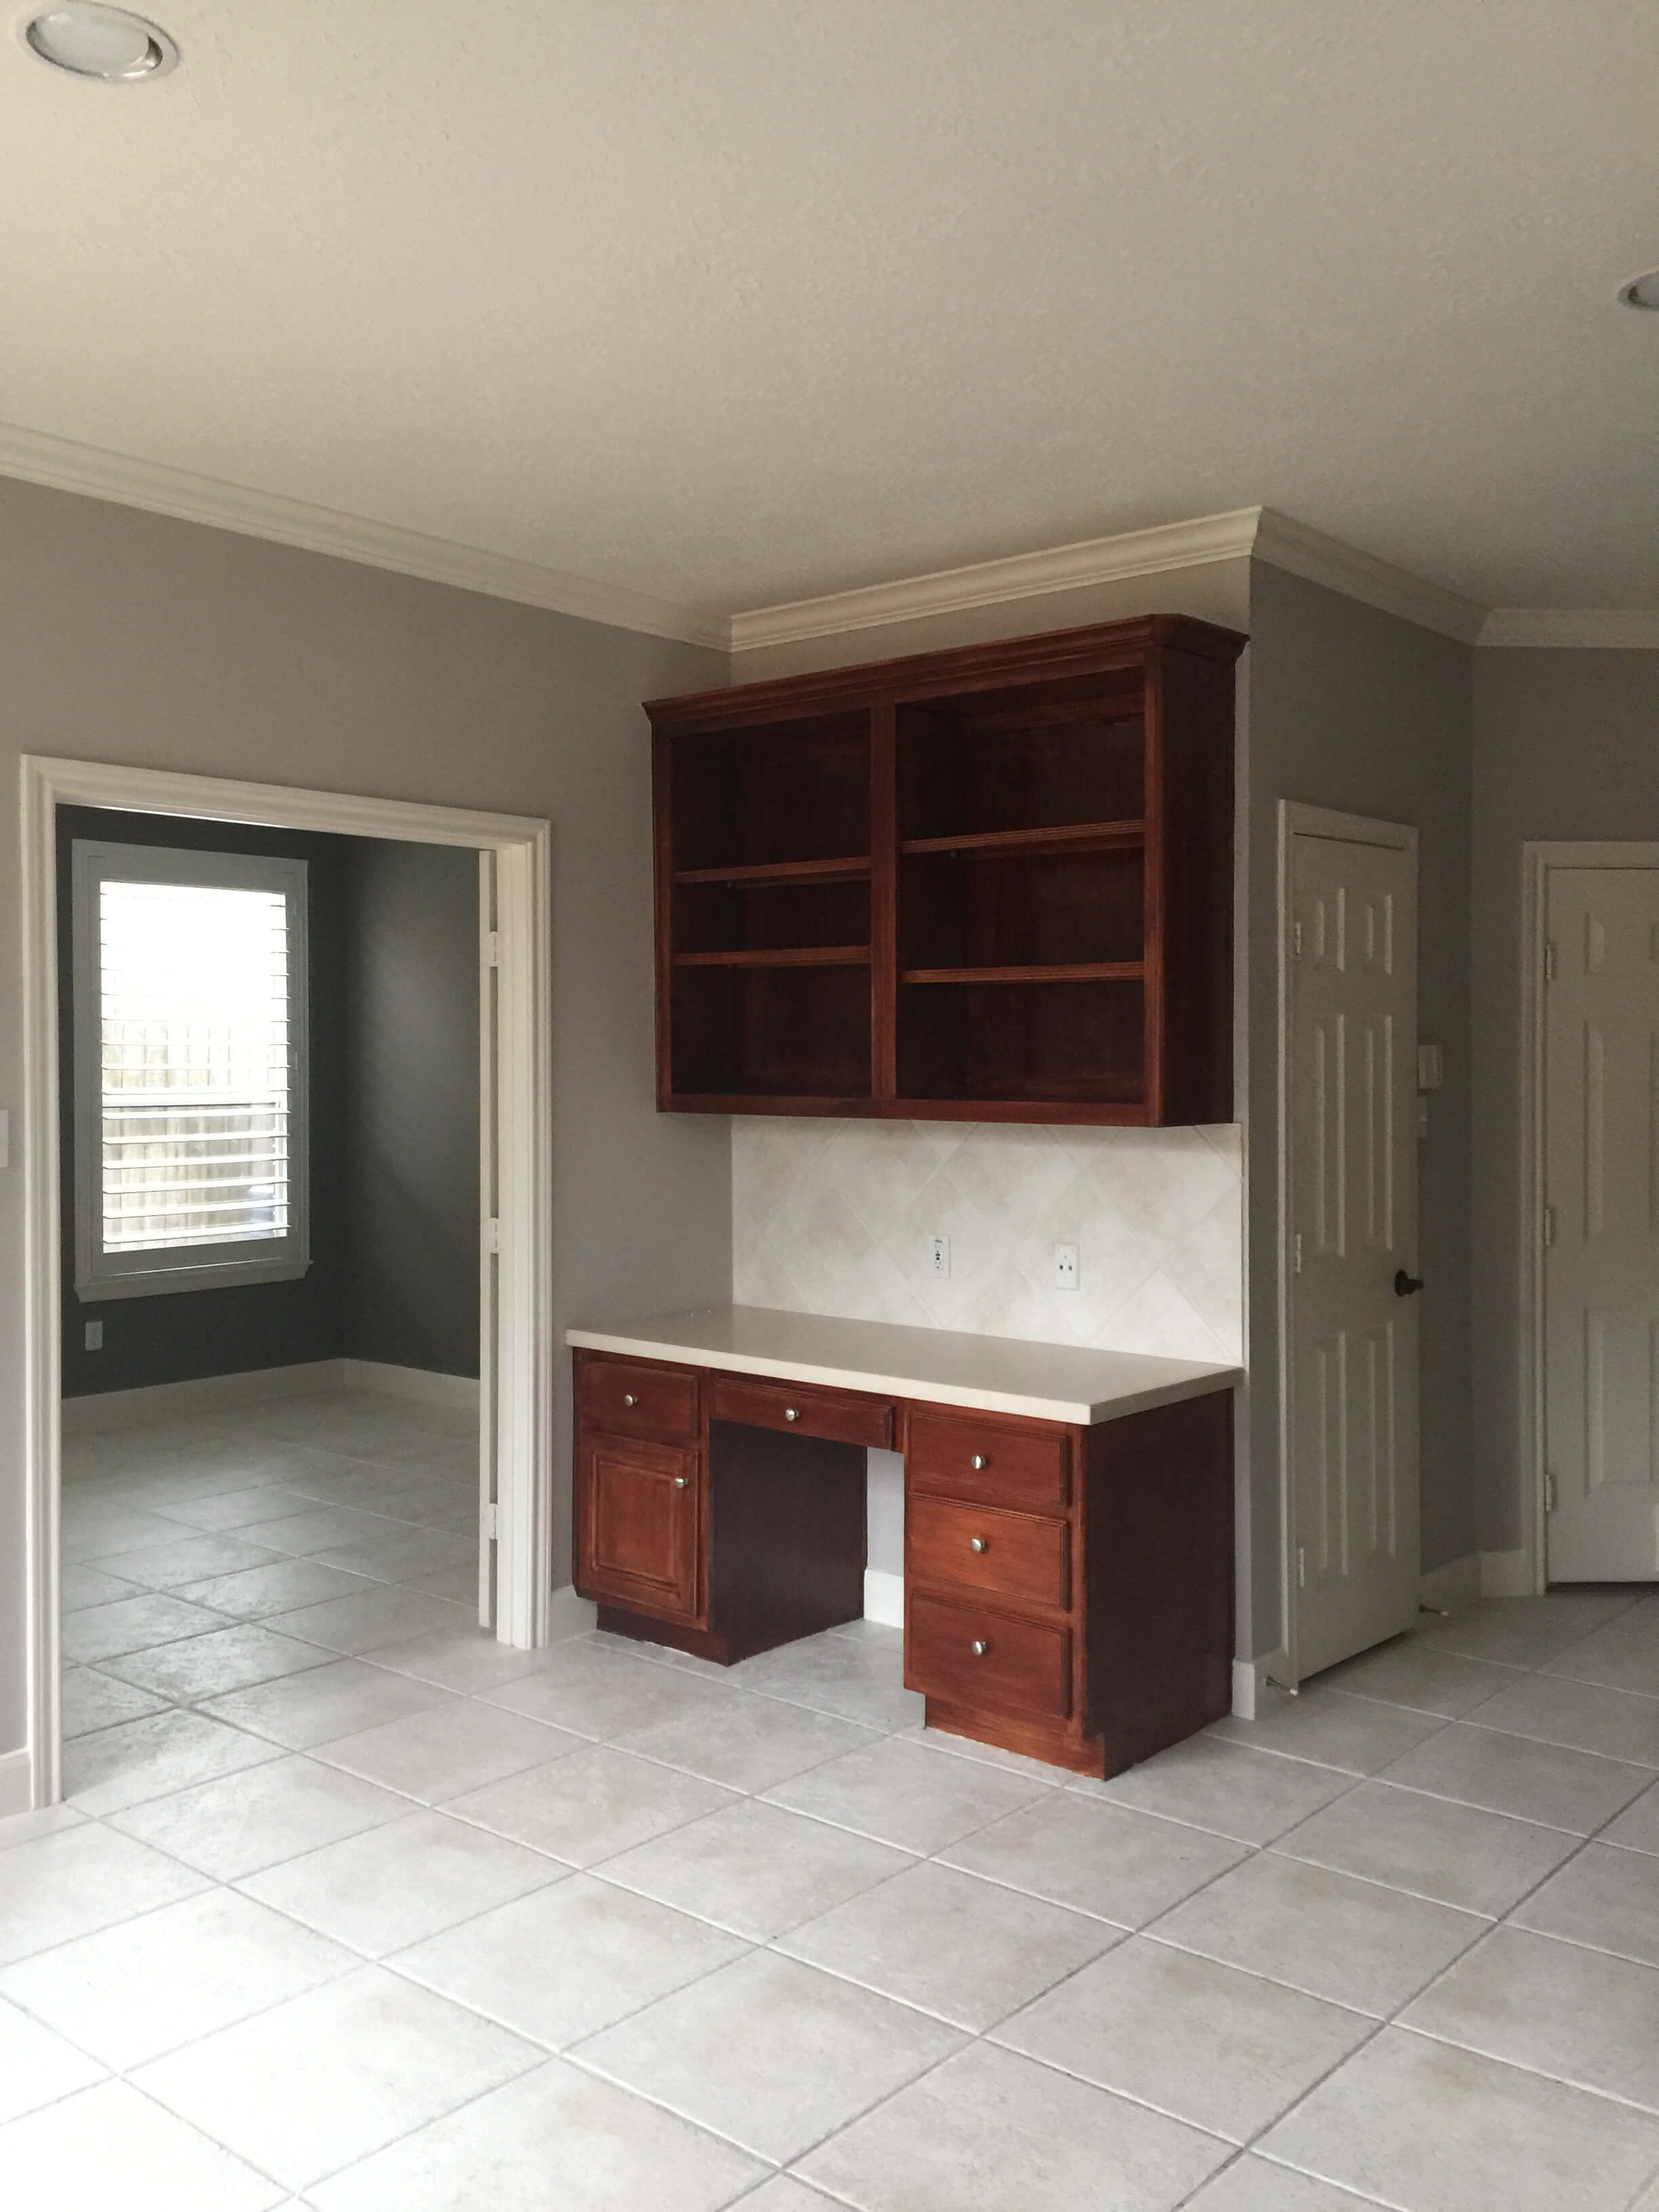 BEFORE - Kitchen Remodel with built-in desk to be removed to include a new mudroom bench